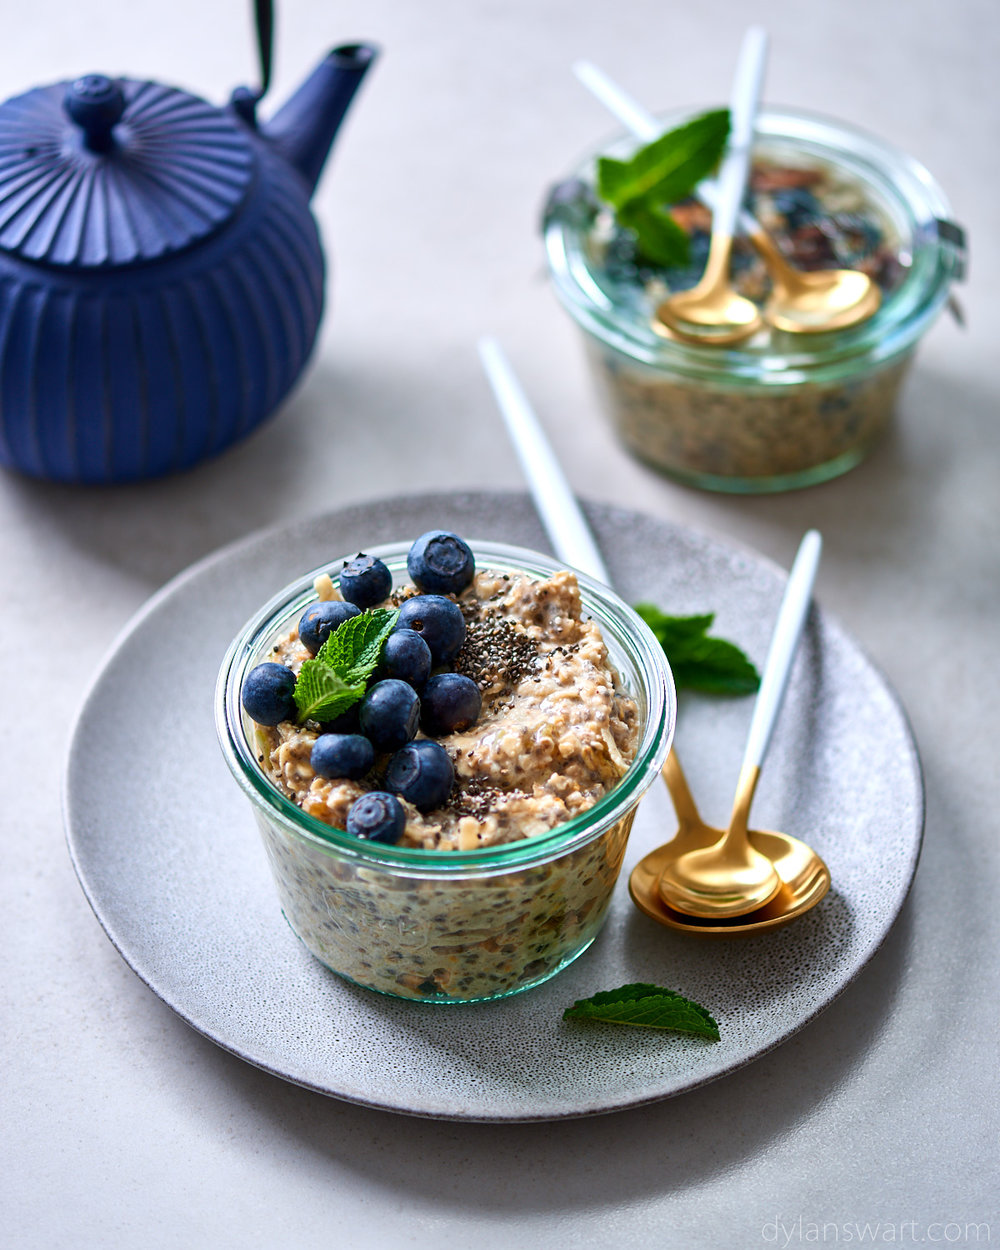 Make-ahead apple and cinnamon bircher muesli